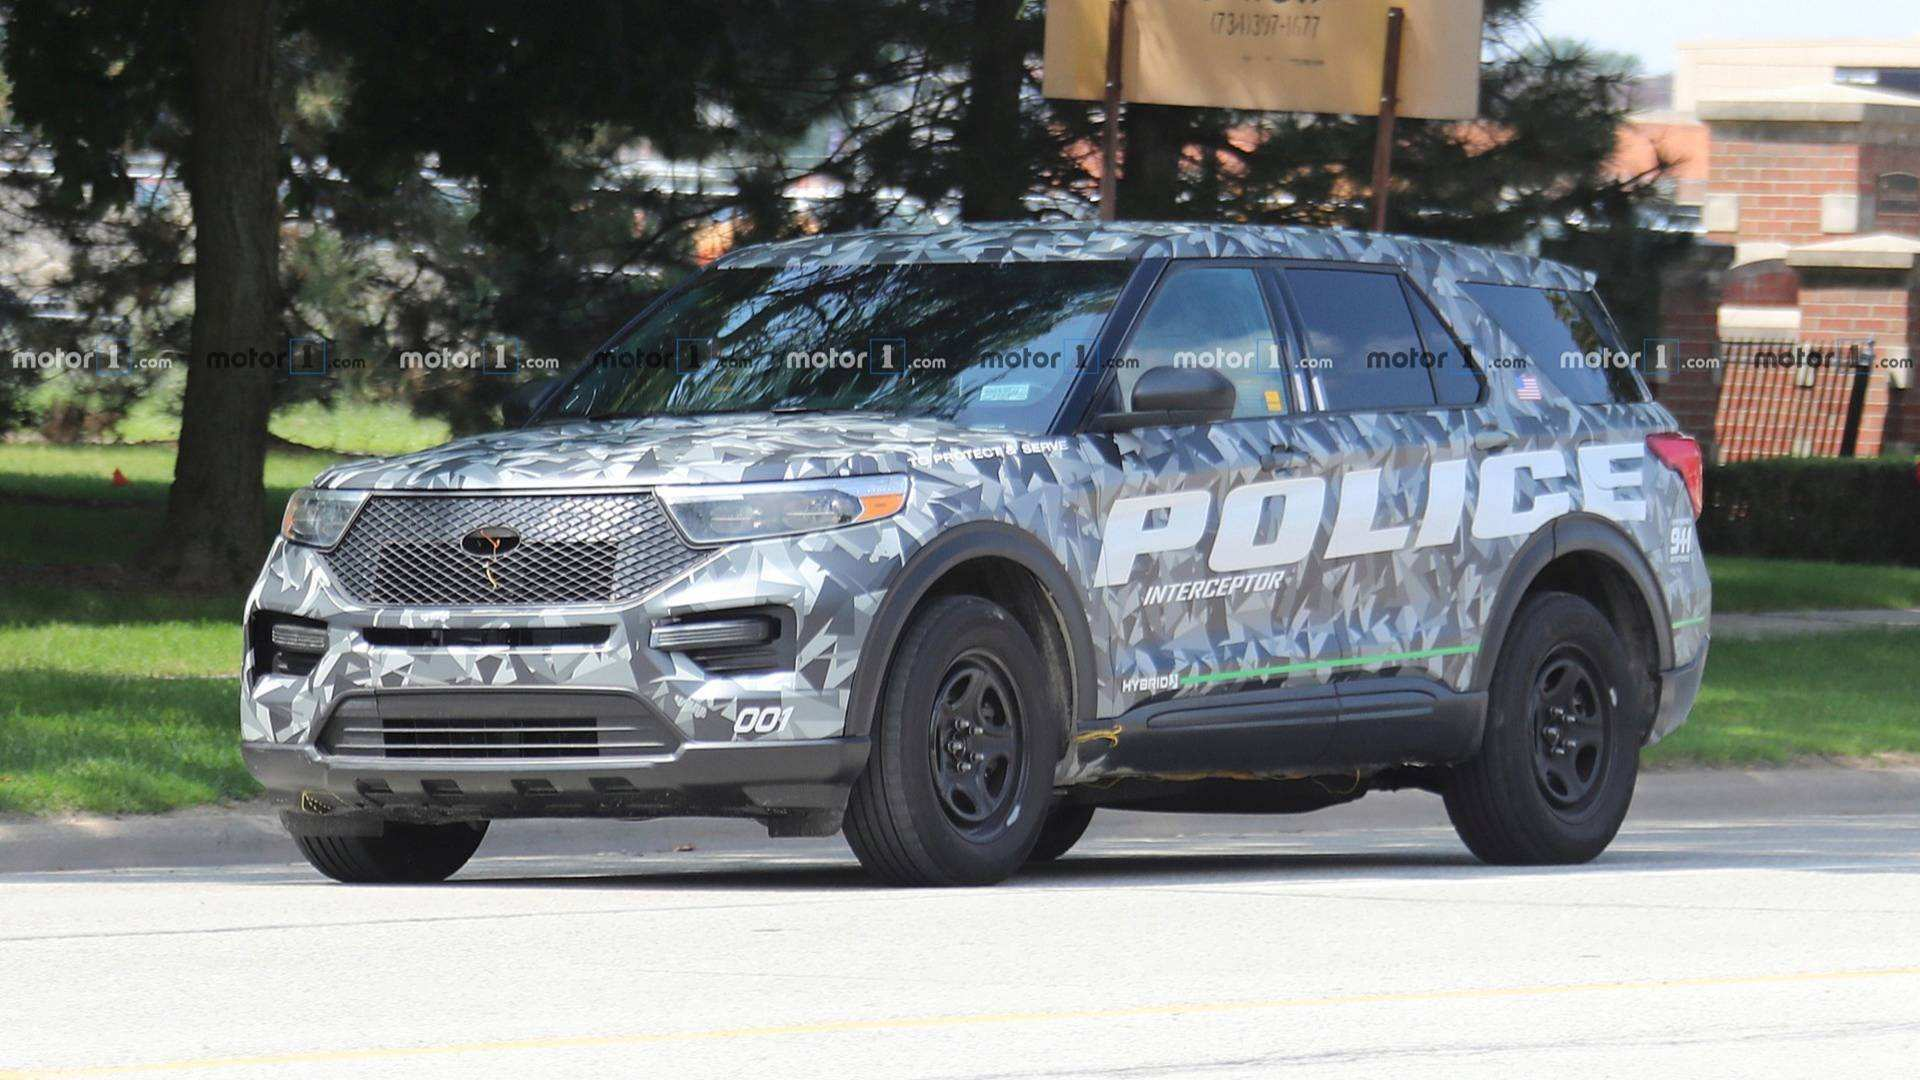 94 All New 2020 Ford Police Interceptor Review with 2020 Ford Police Interceptor